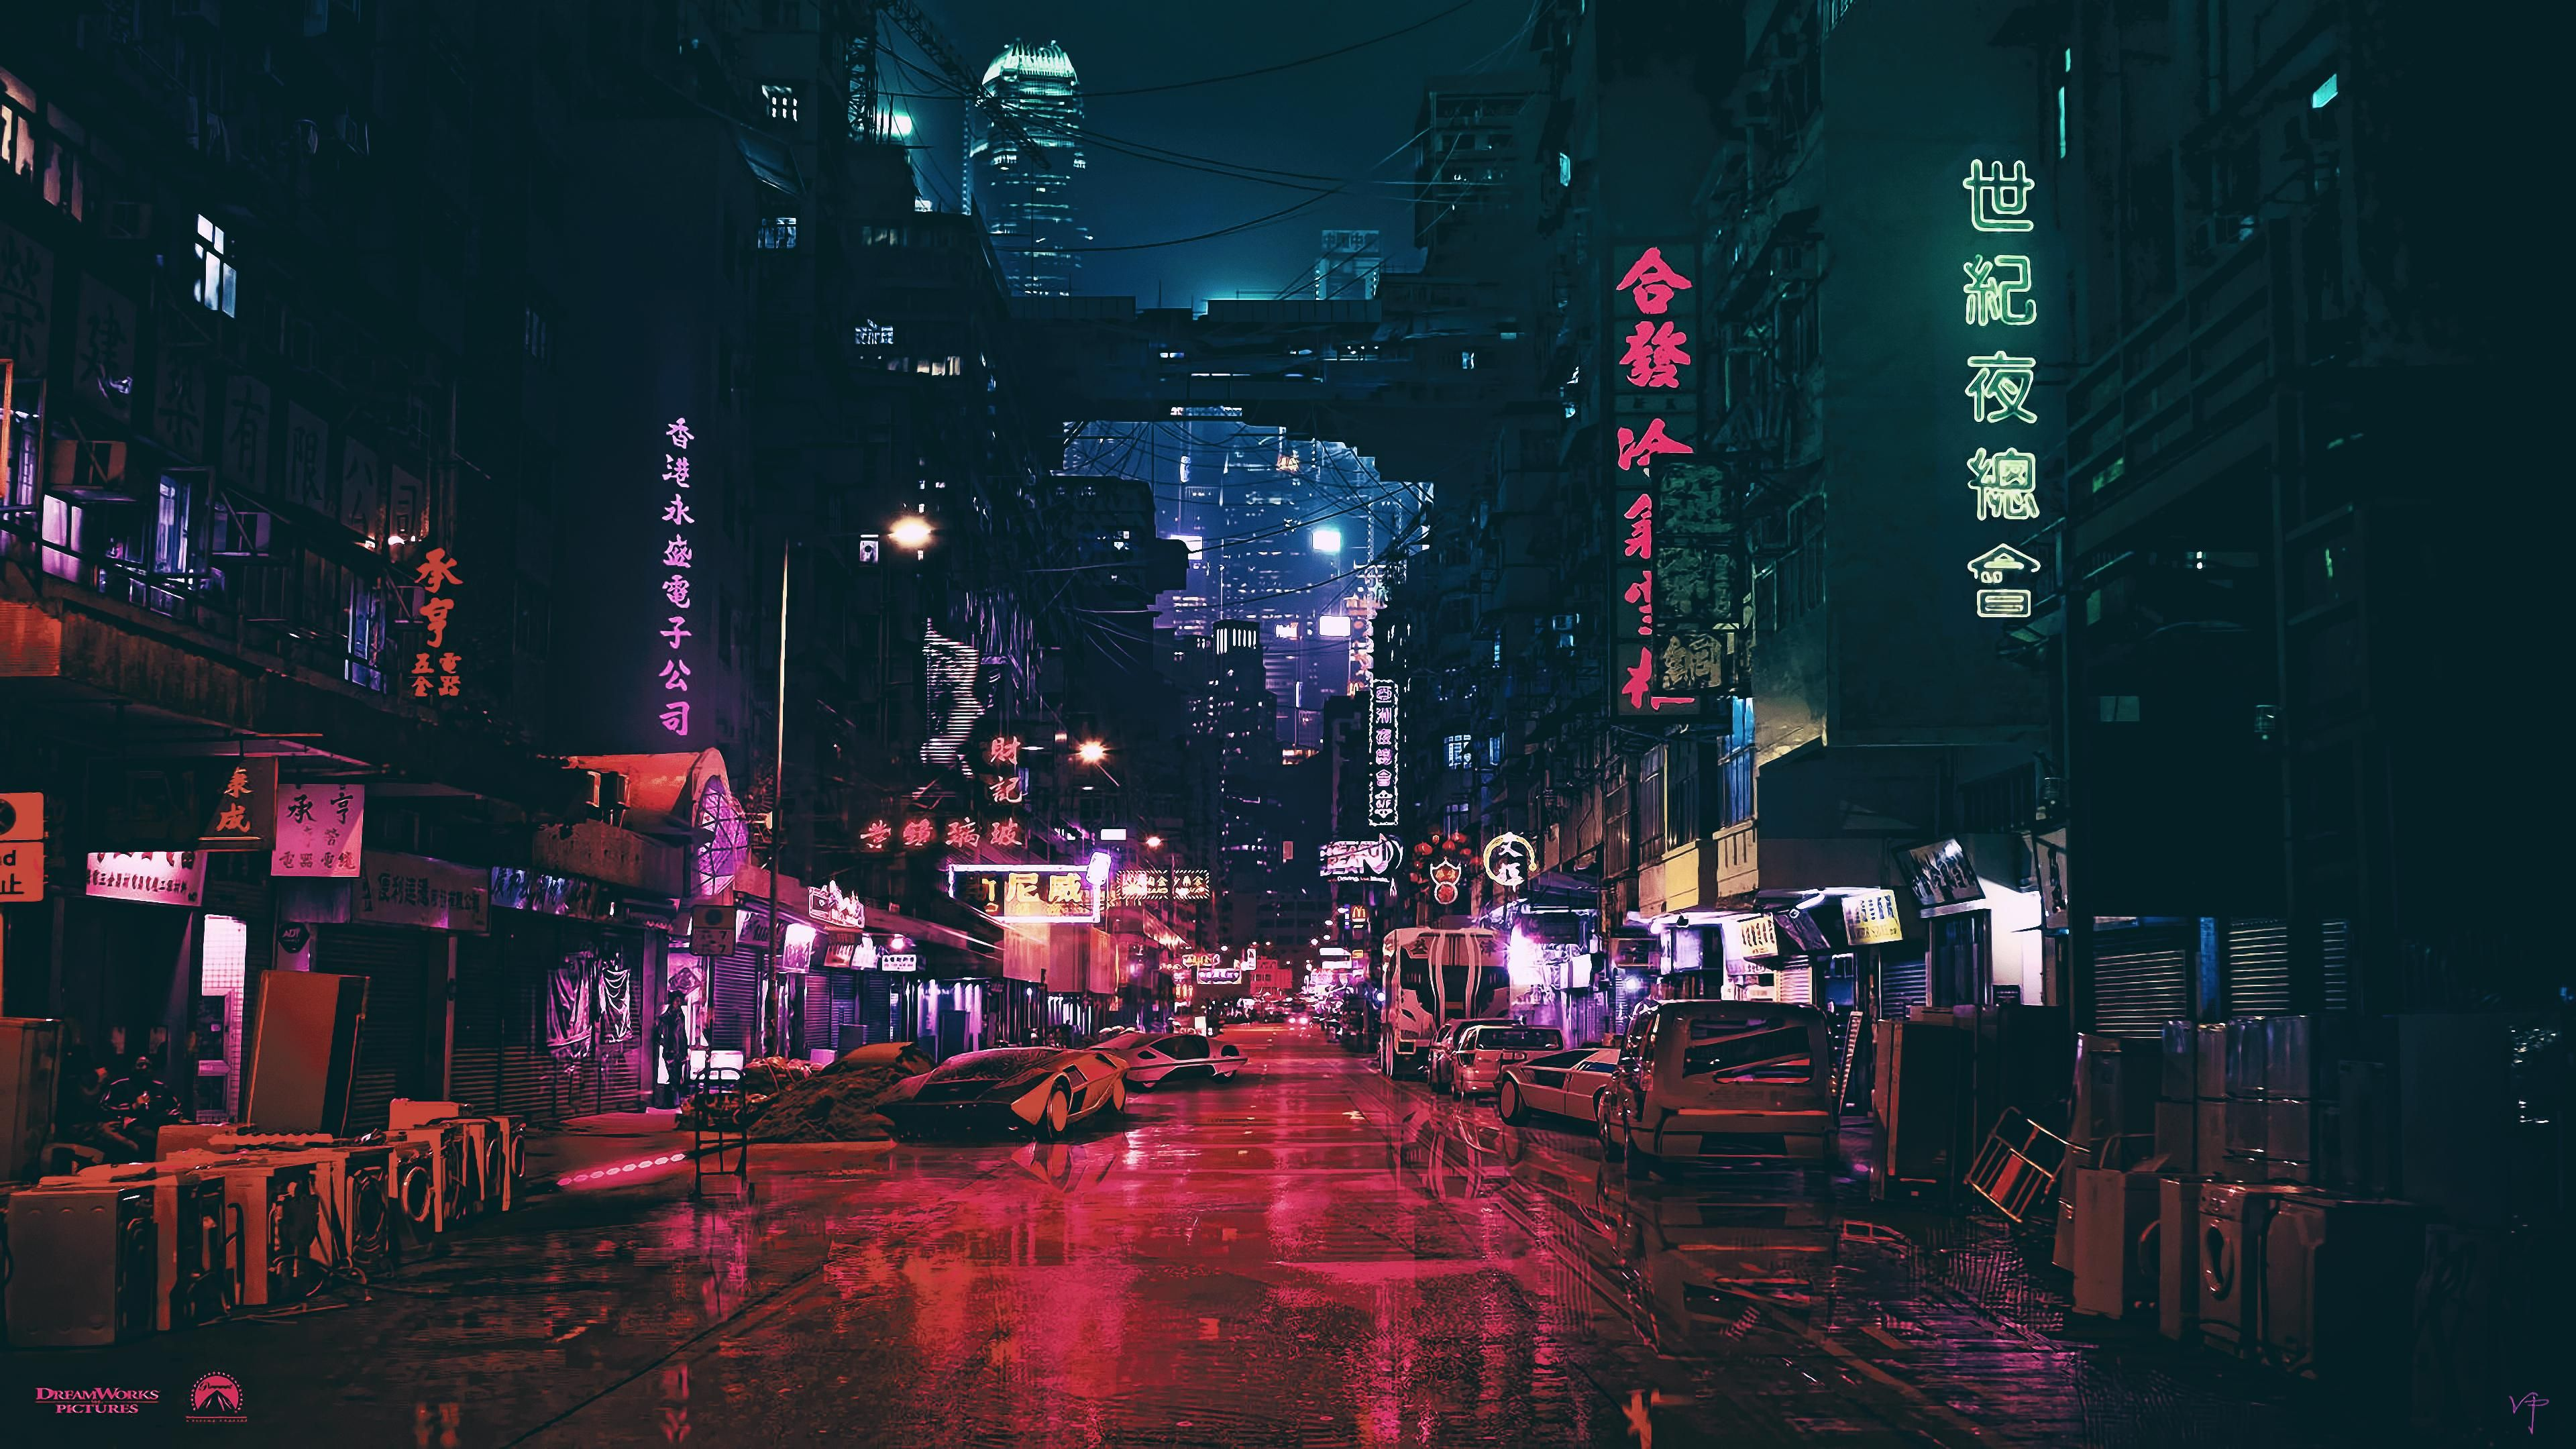 Ghost in the Shell City wallpaper, Cyberpunk city, Ghost